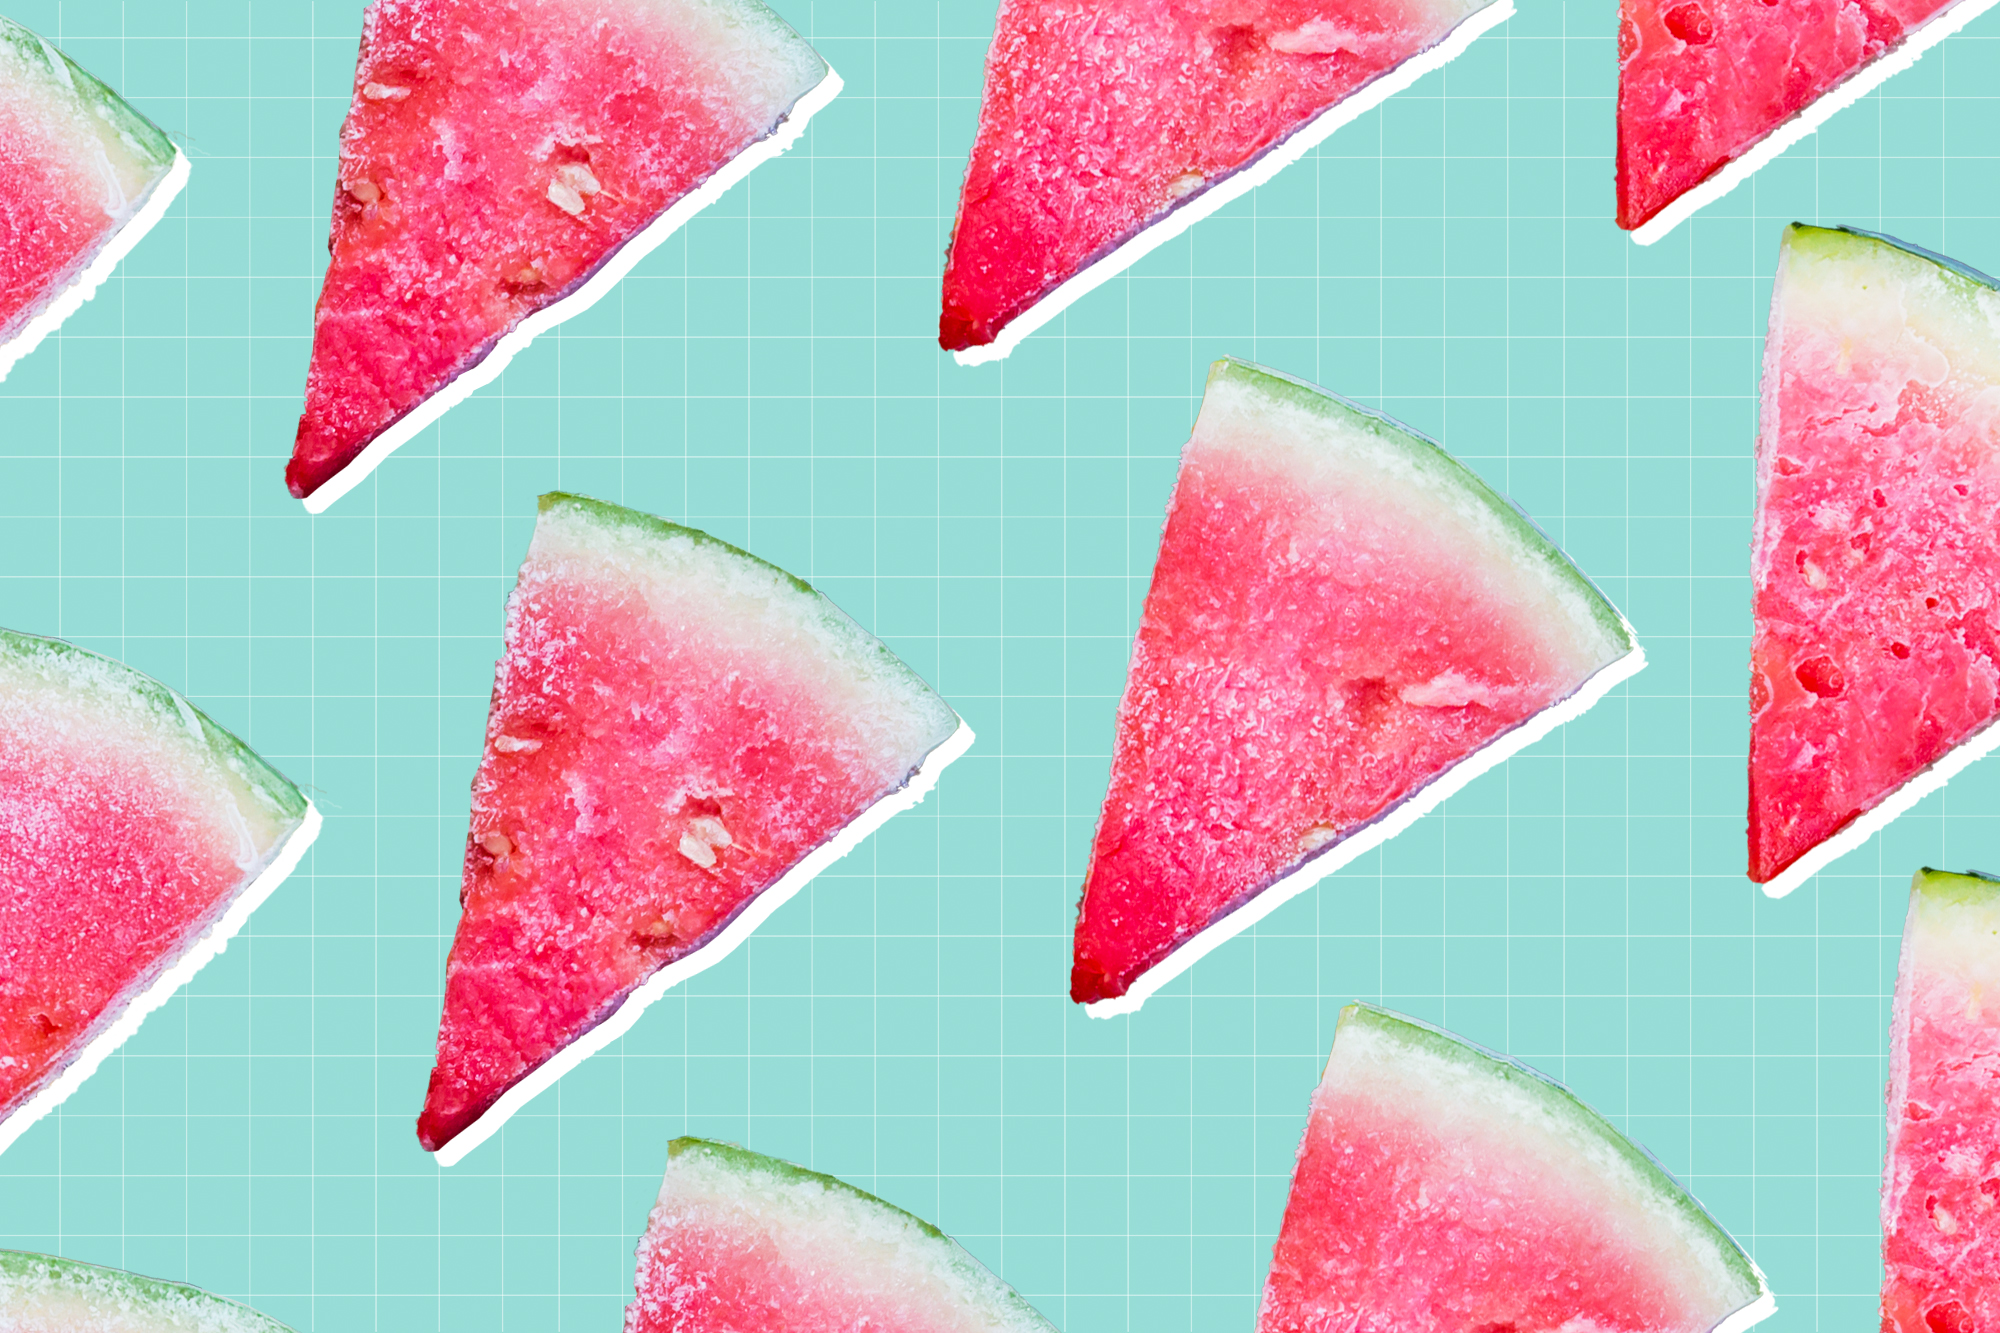 Frozen watermelon wedges on a designed background